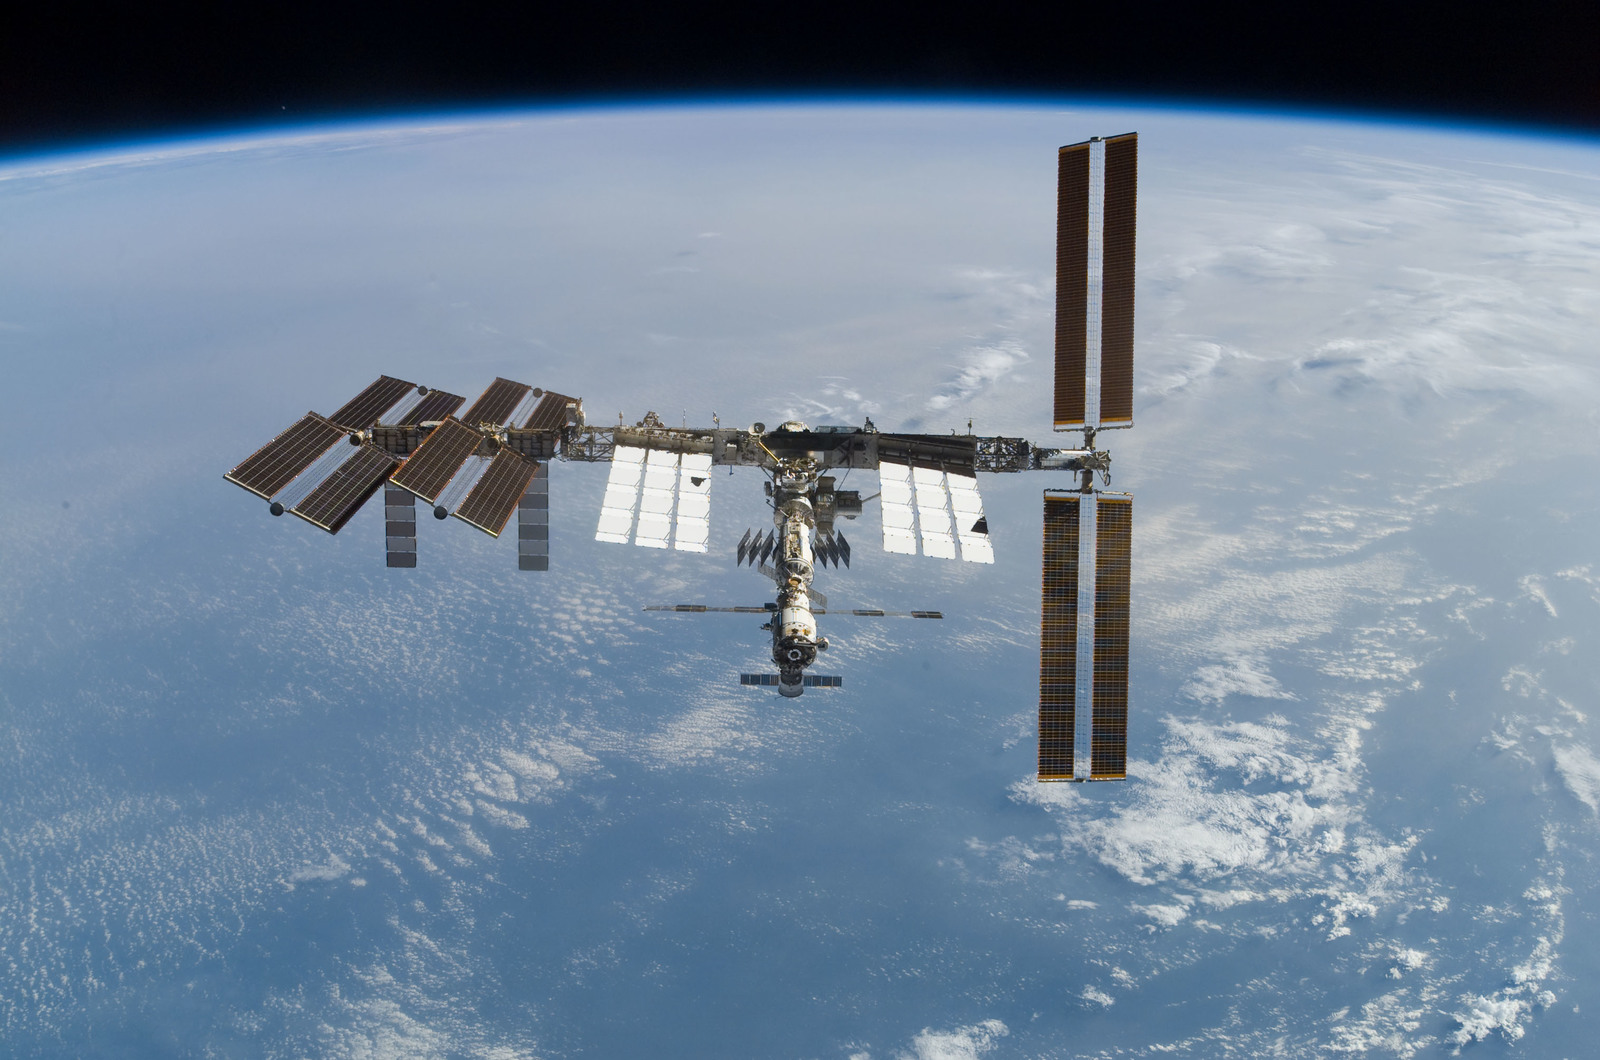 S122E010952 - STS-122 - View of ISS after STS-122 Undocking